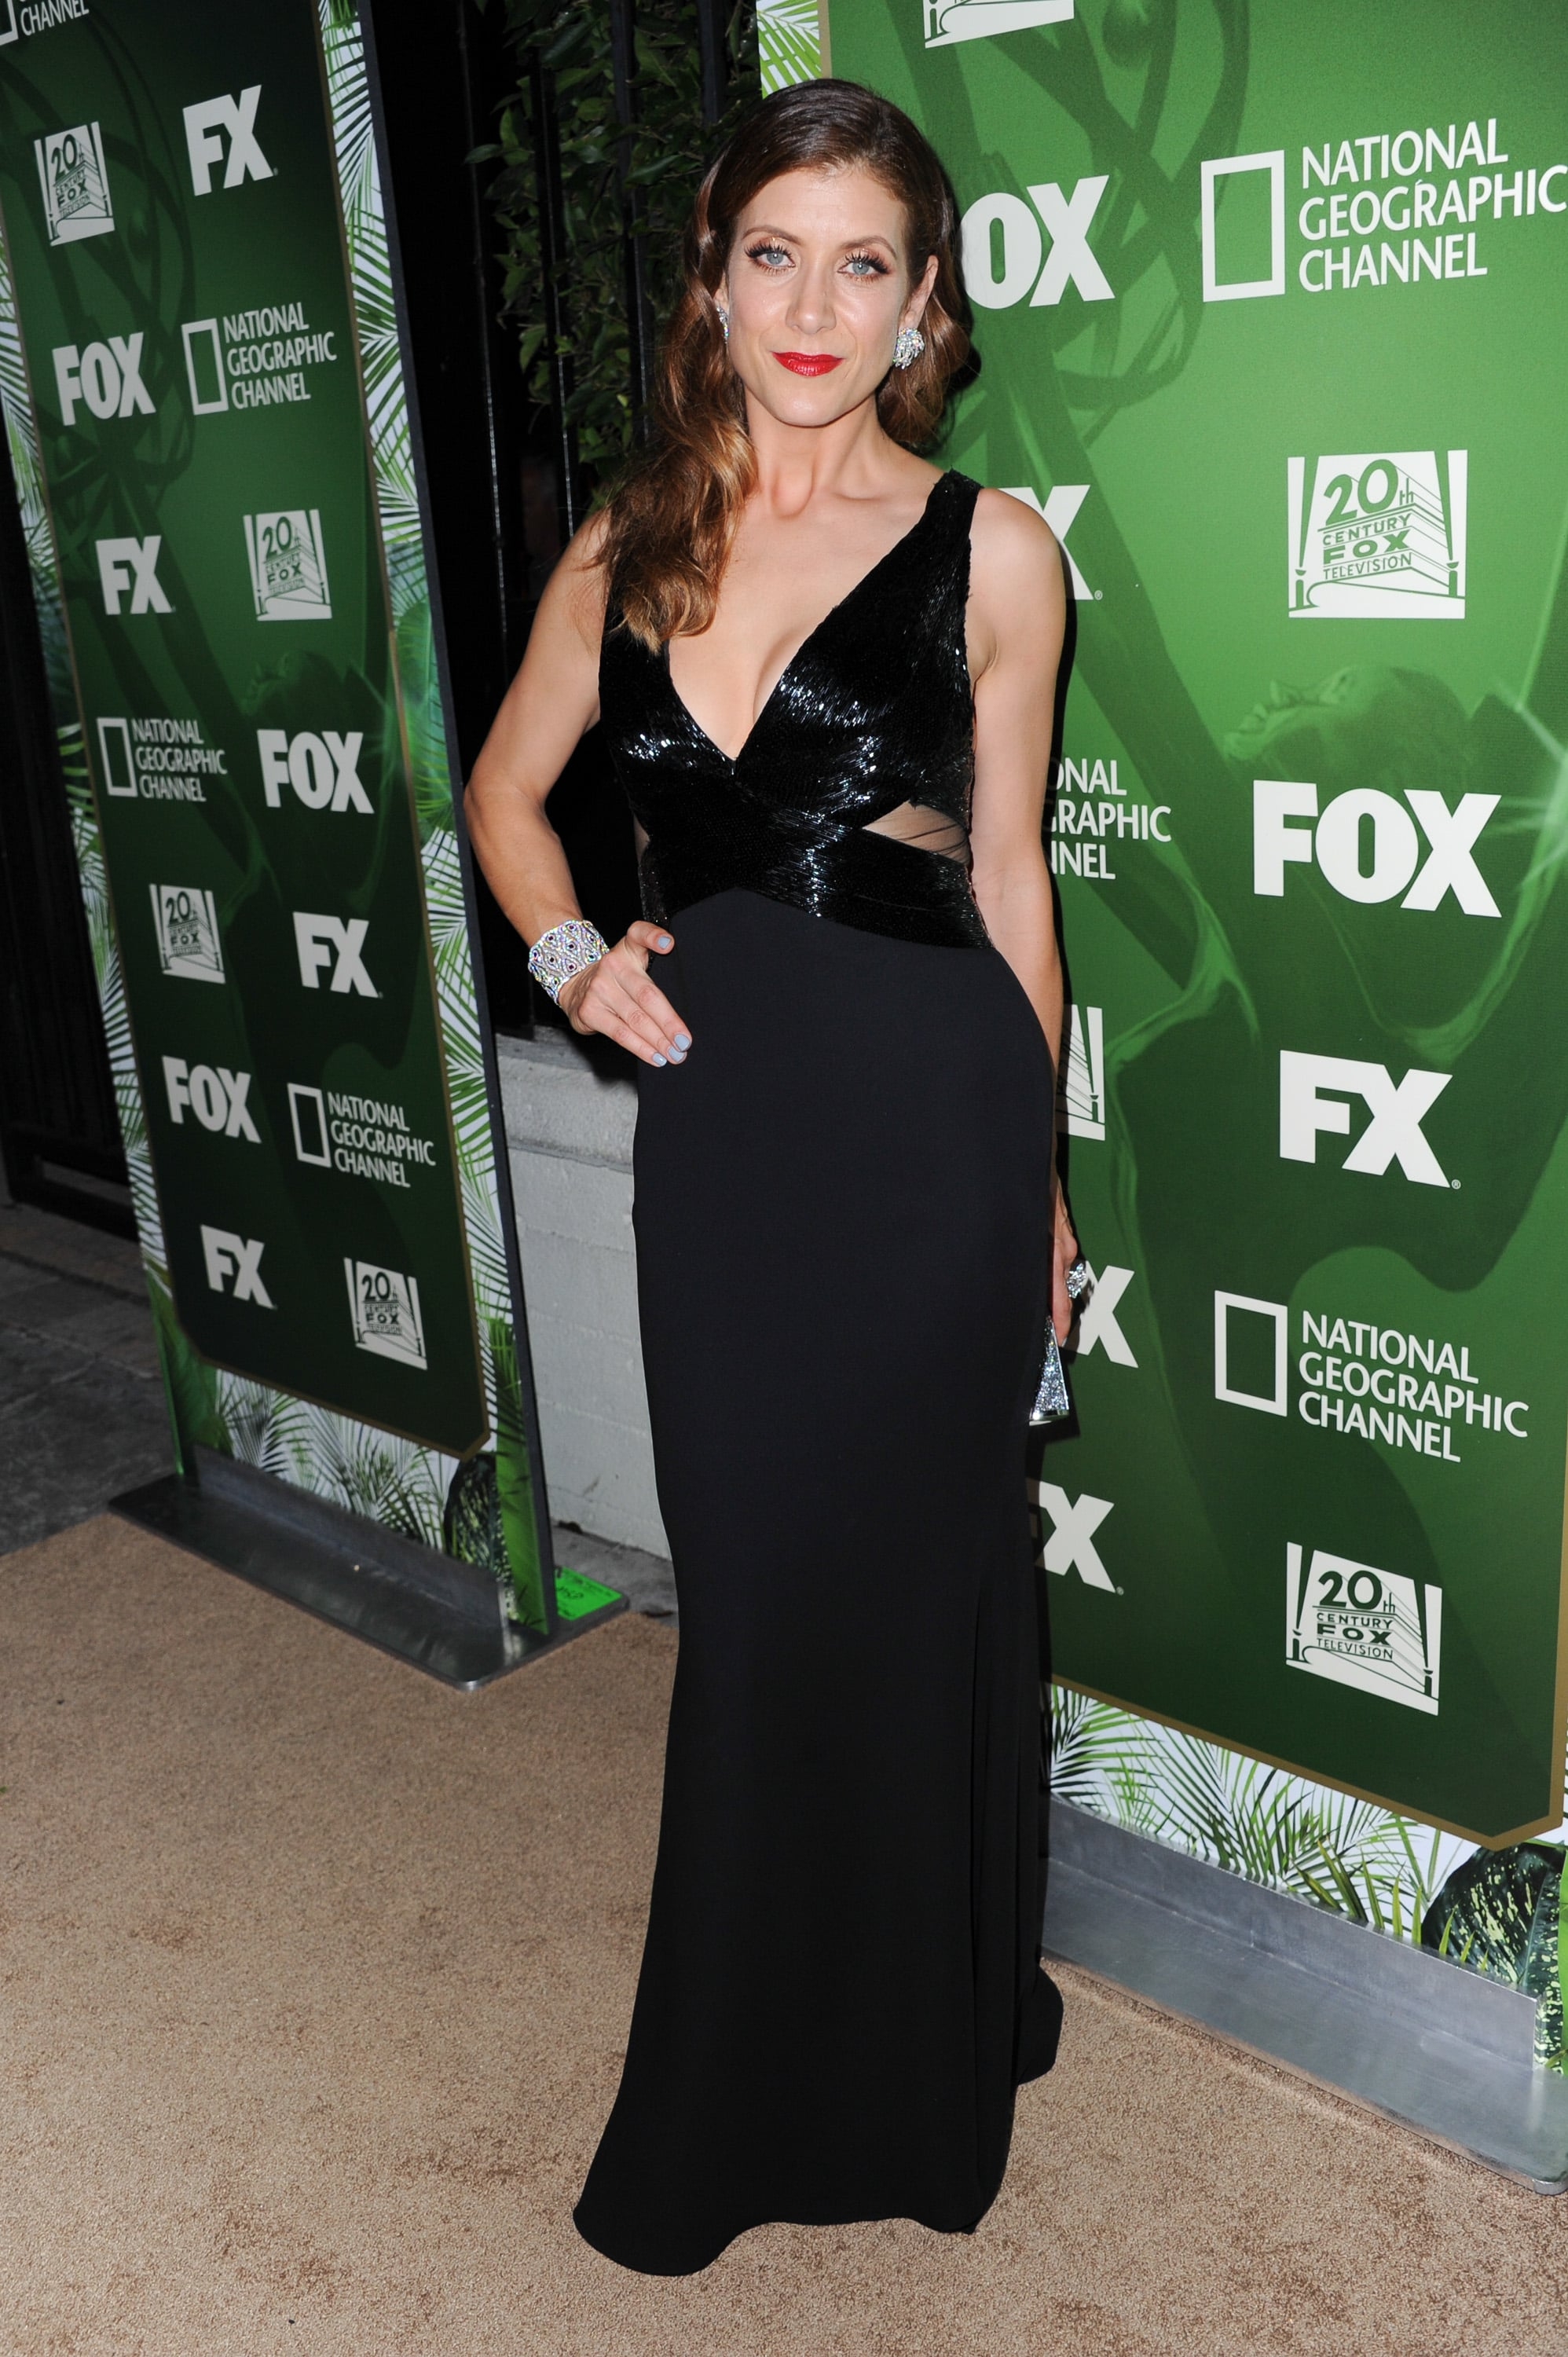 Kate Walsh changed into a low-cut black gown for her night out.